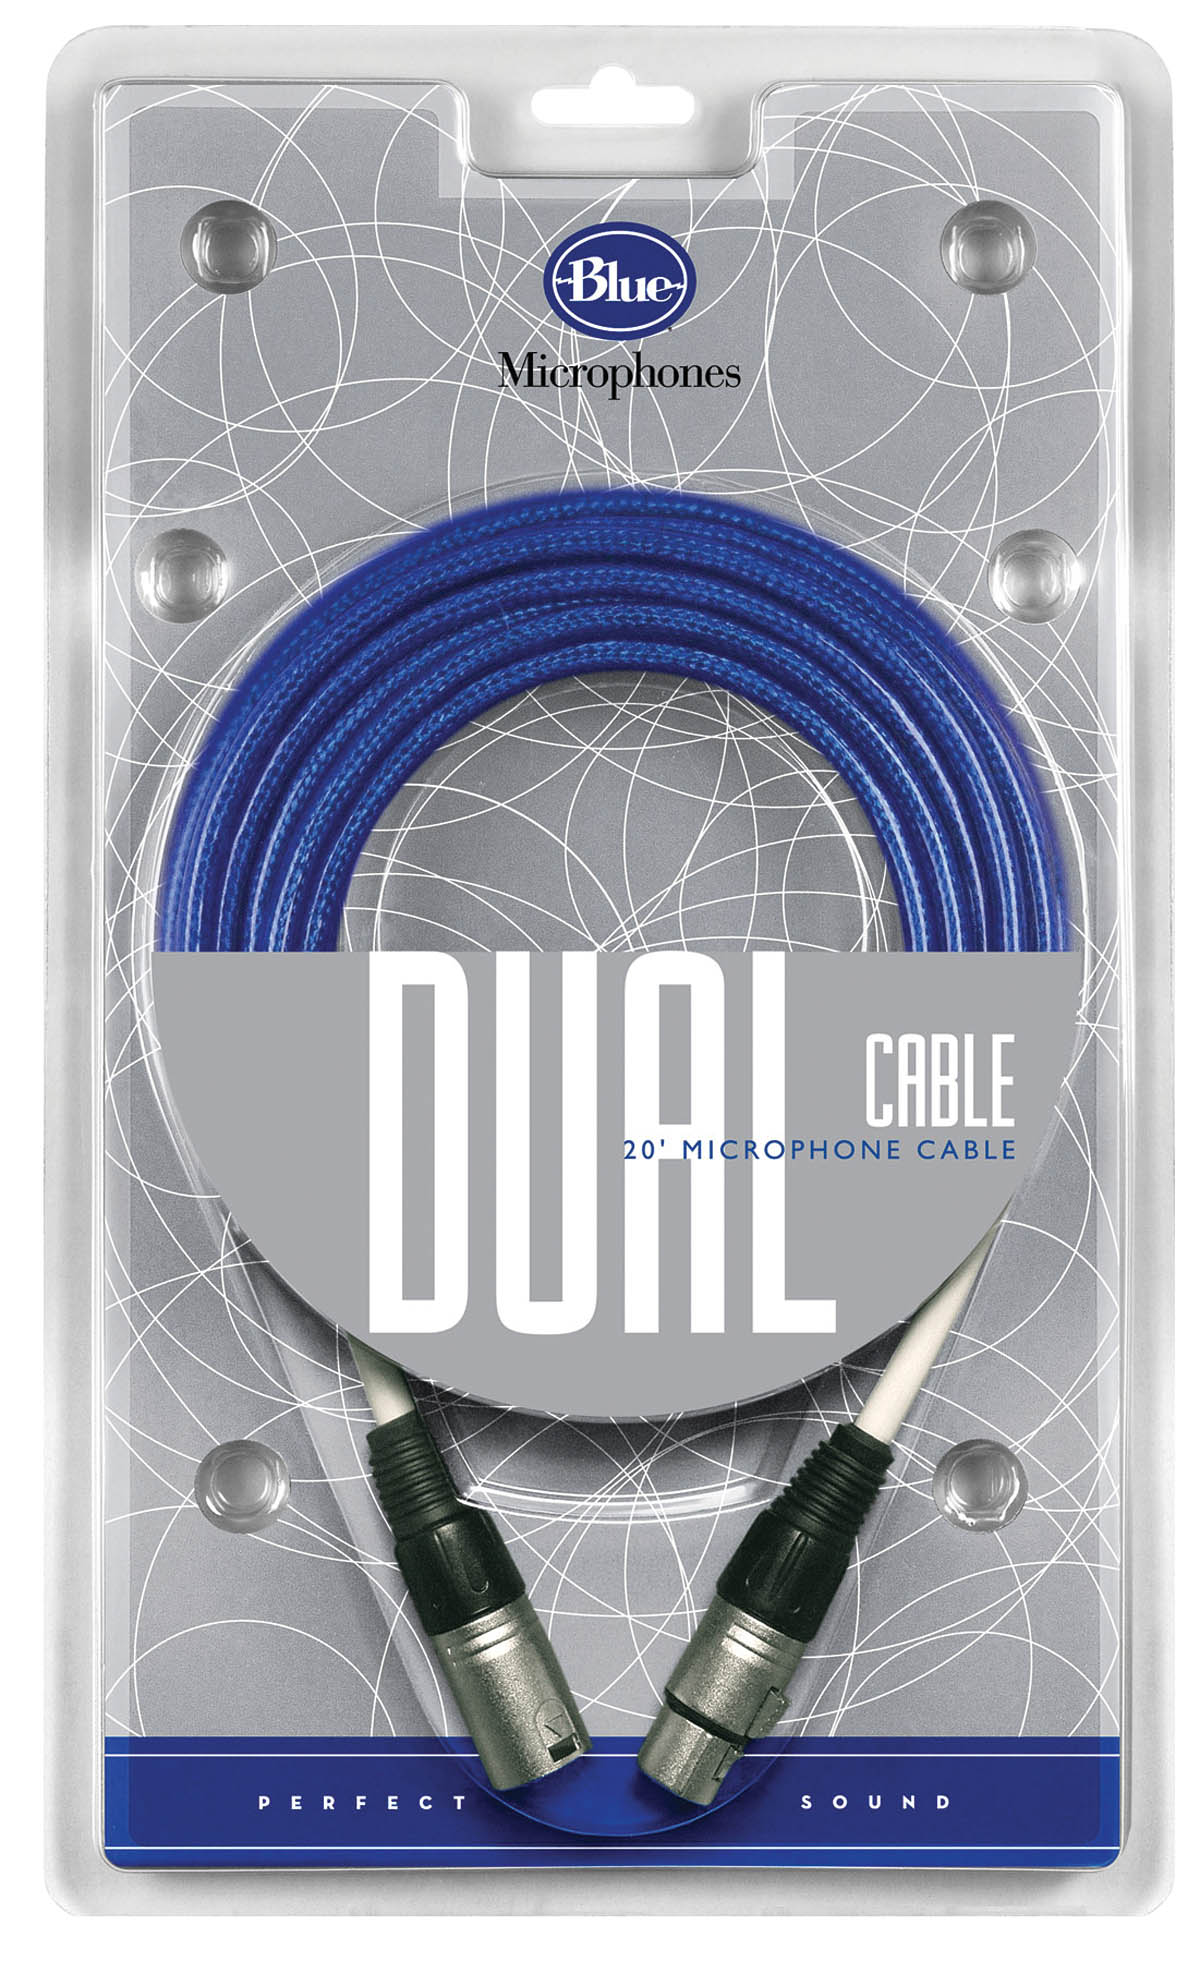 Dual Cable